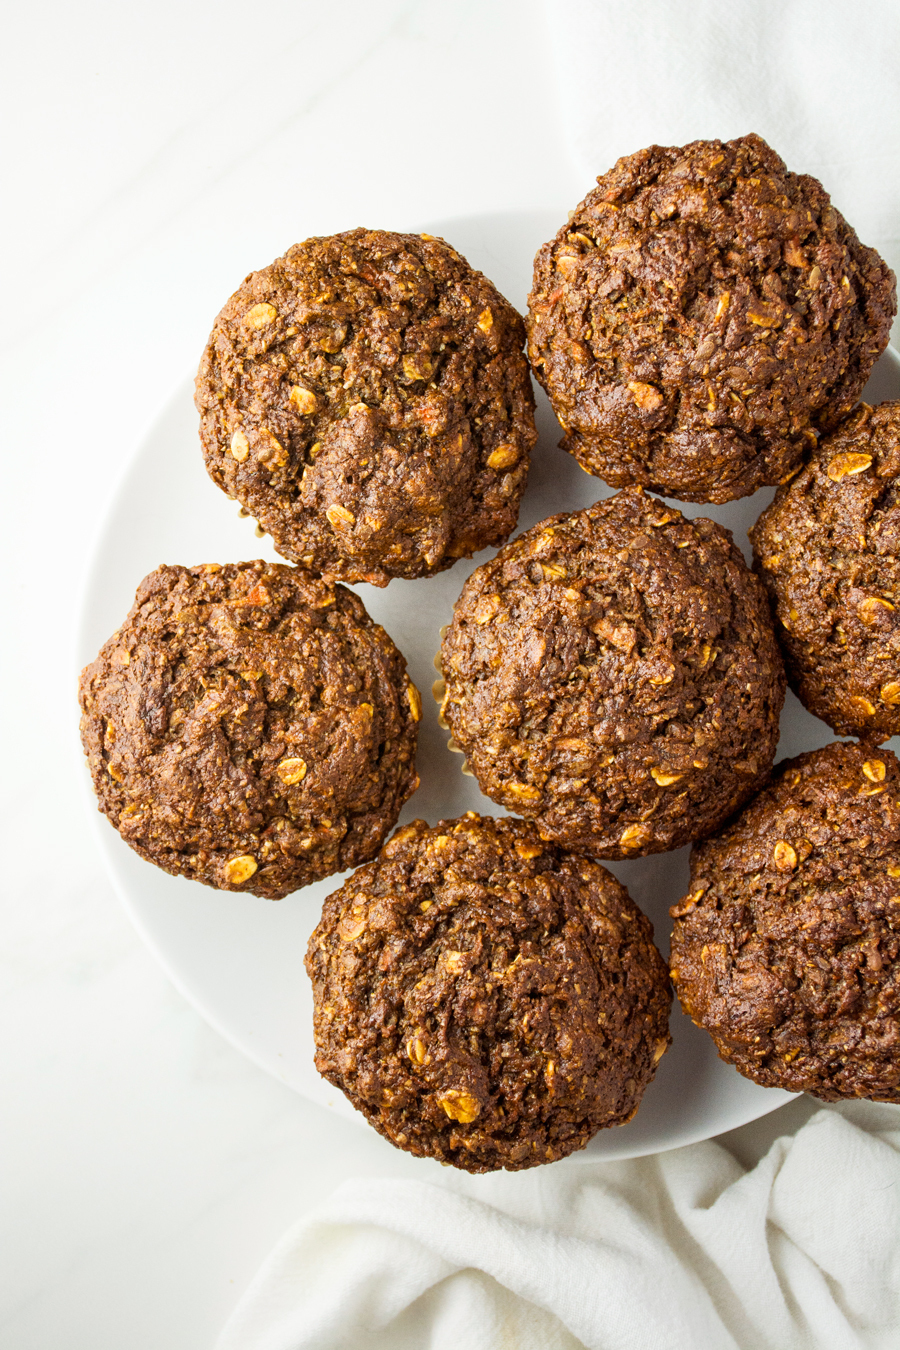 All-in-one Breakfast Muffins